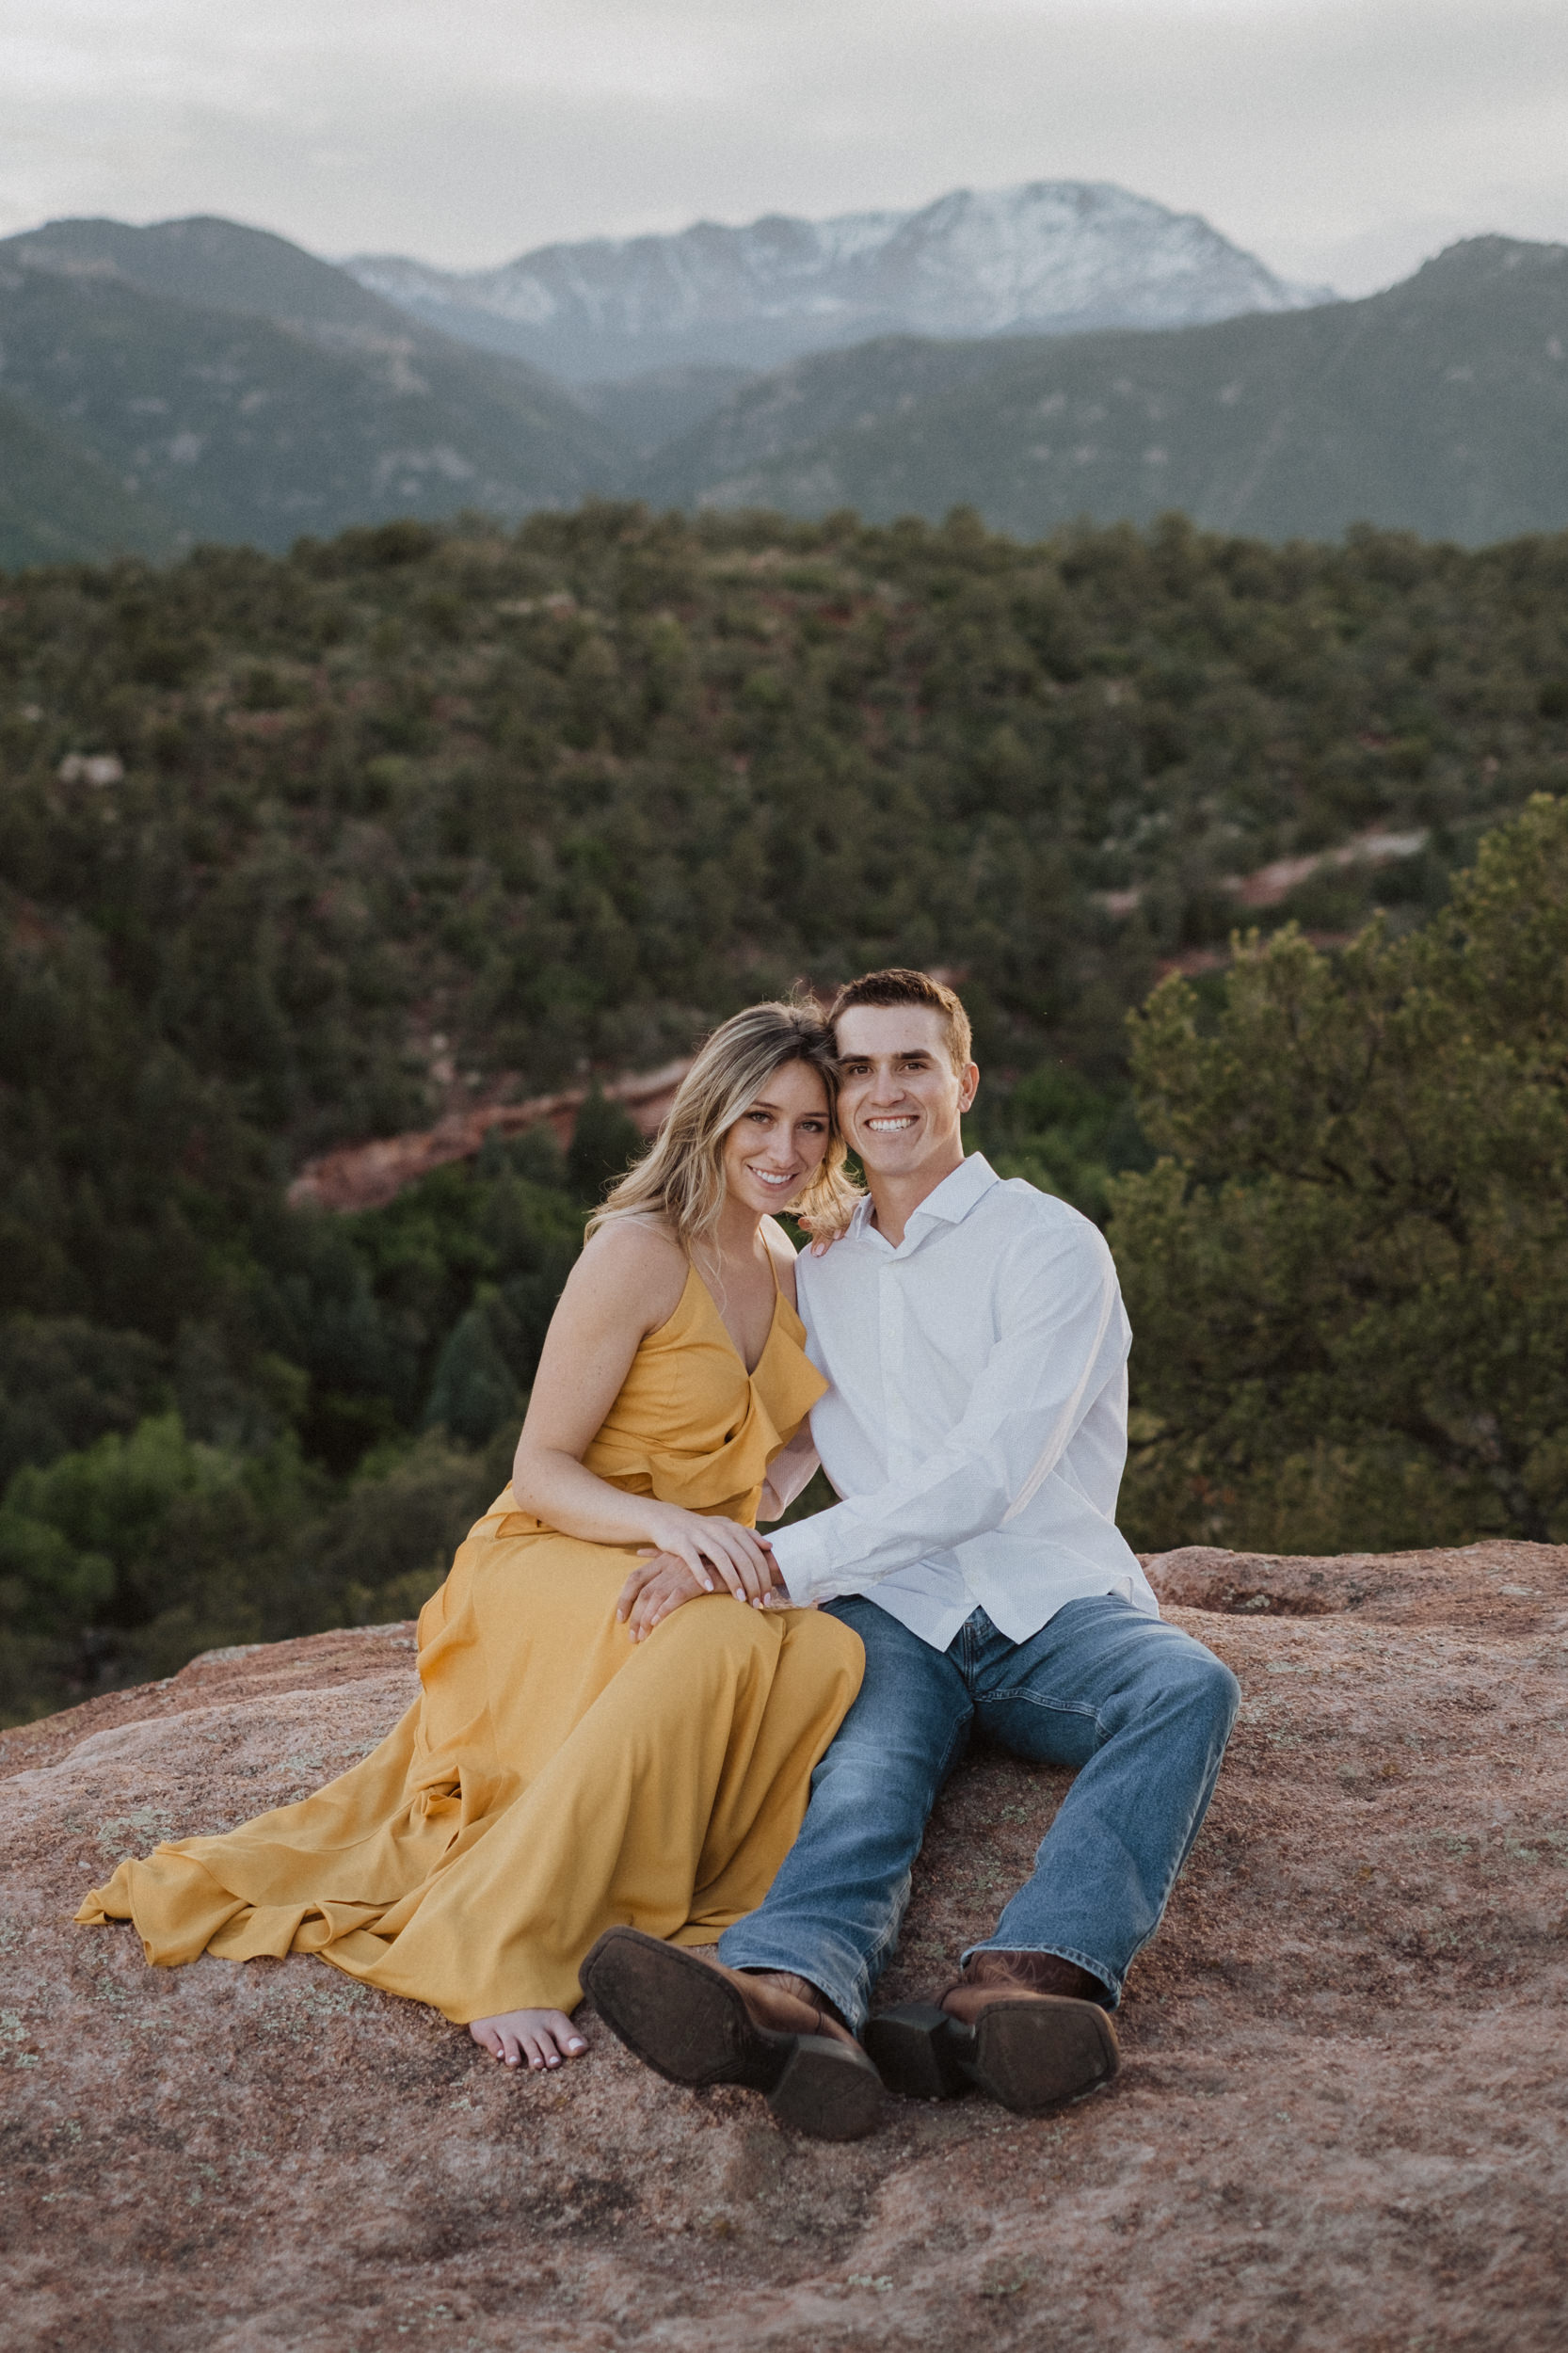 Garden of the Gods engagement session in Colorado Springs. Colorado Springs adventure engagement session location. Garden of the Gods engagement photos. Colorado wedding photography.